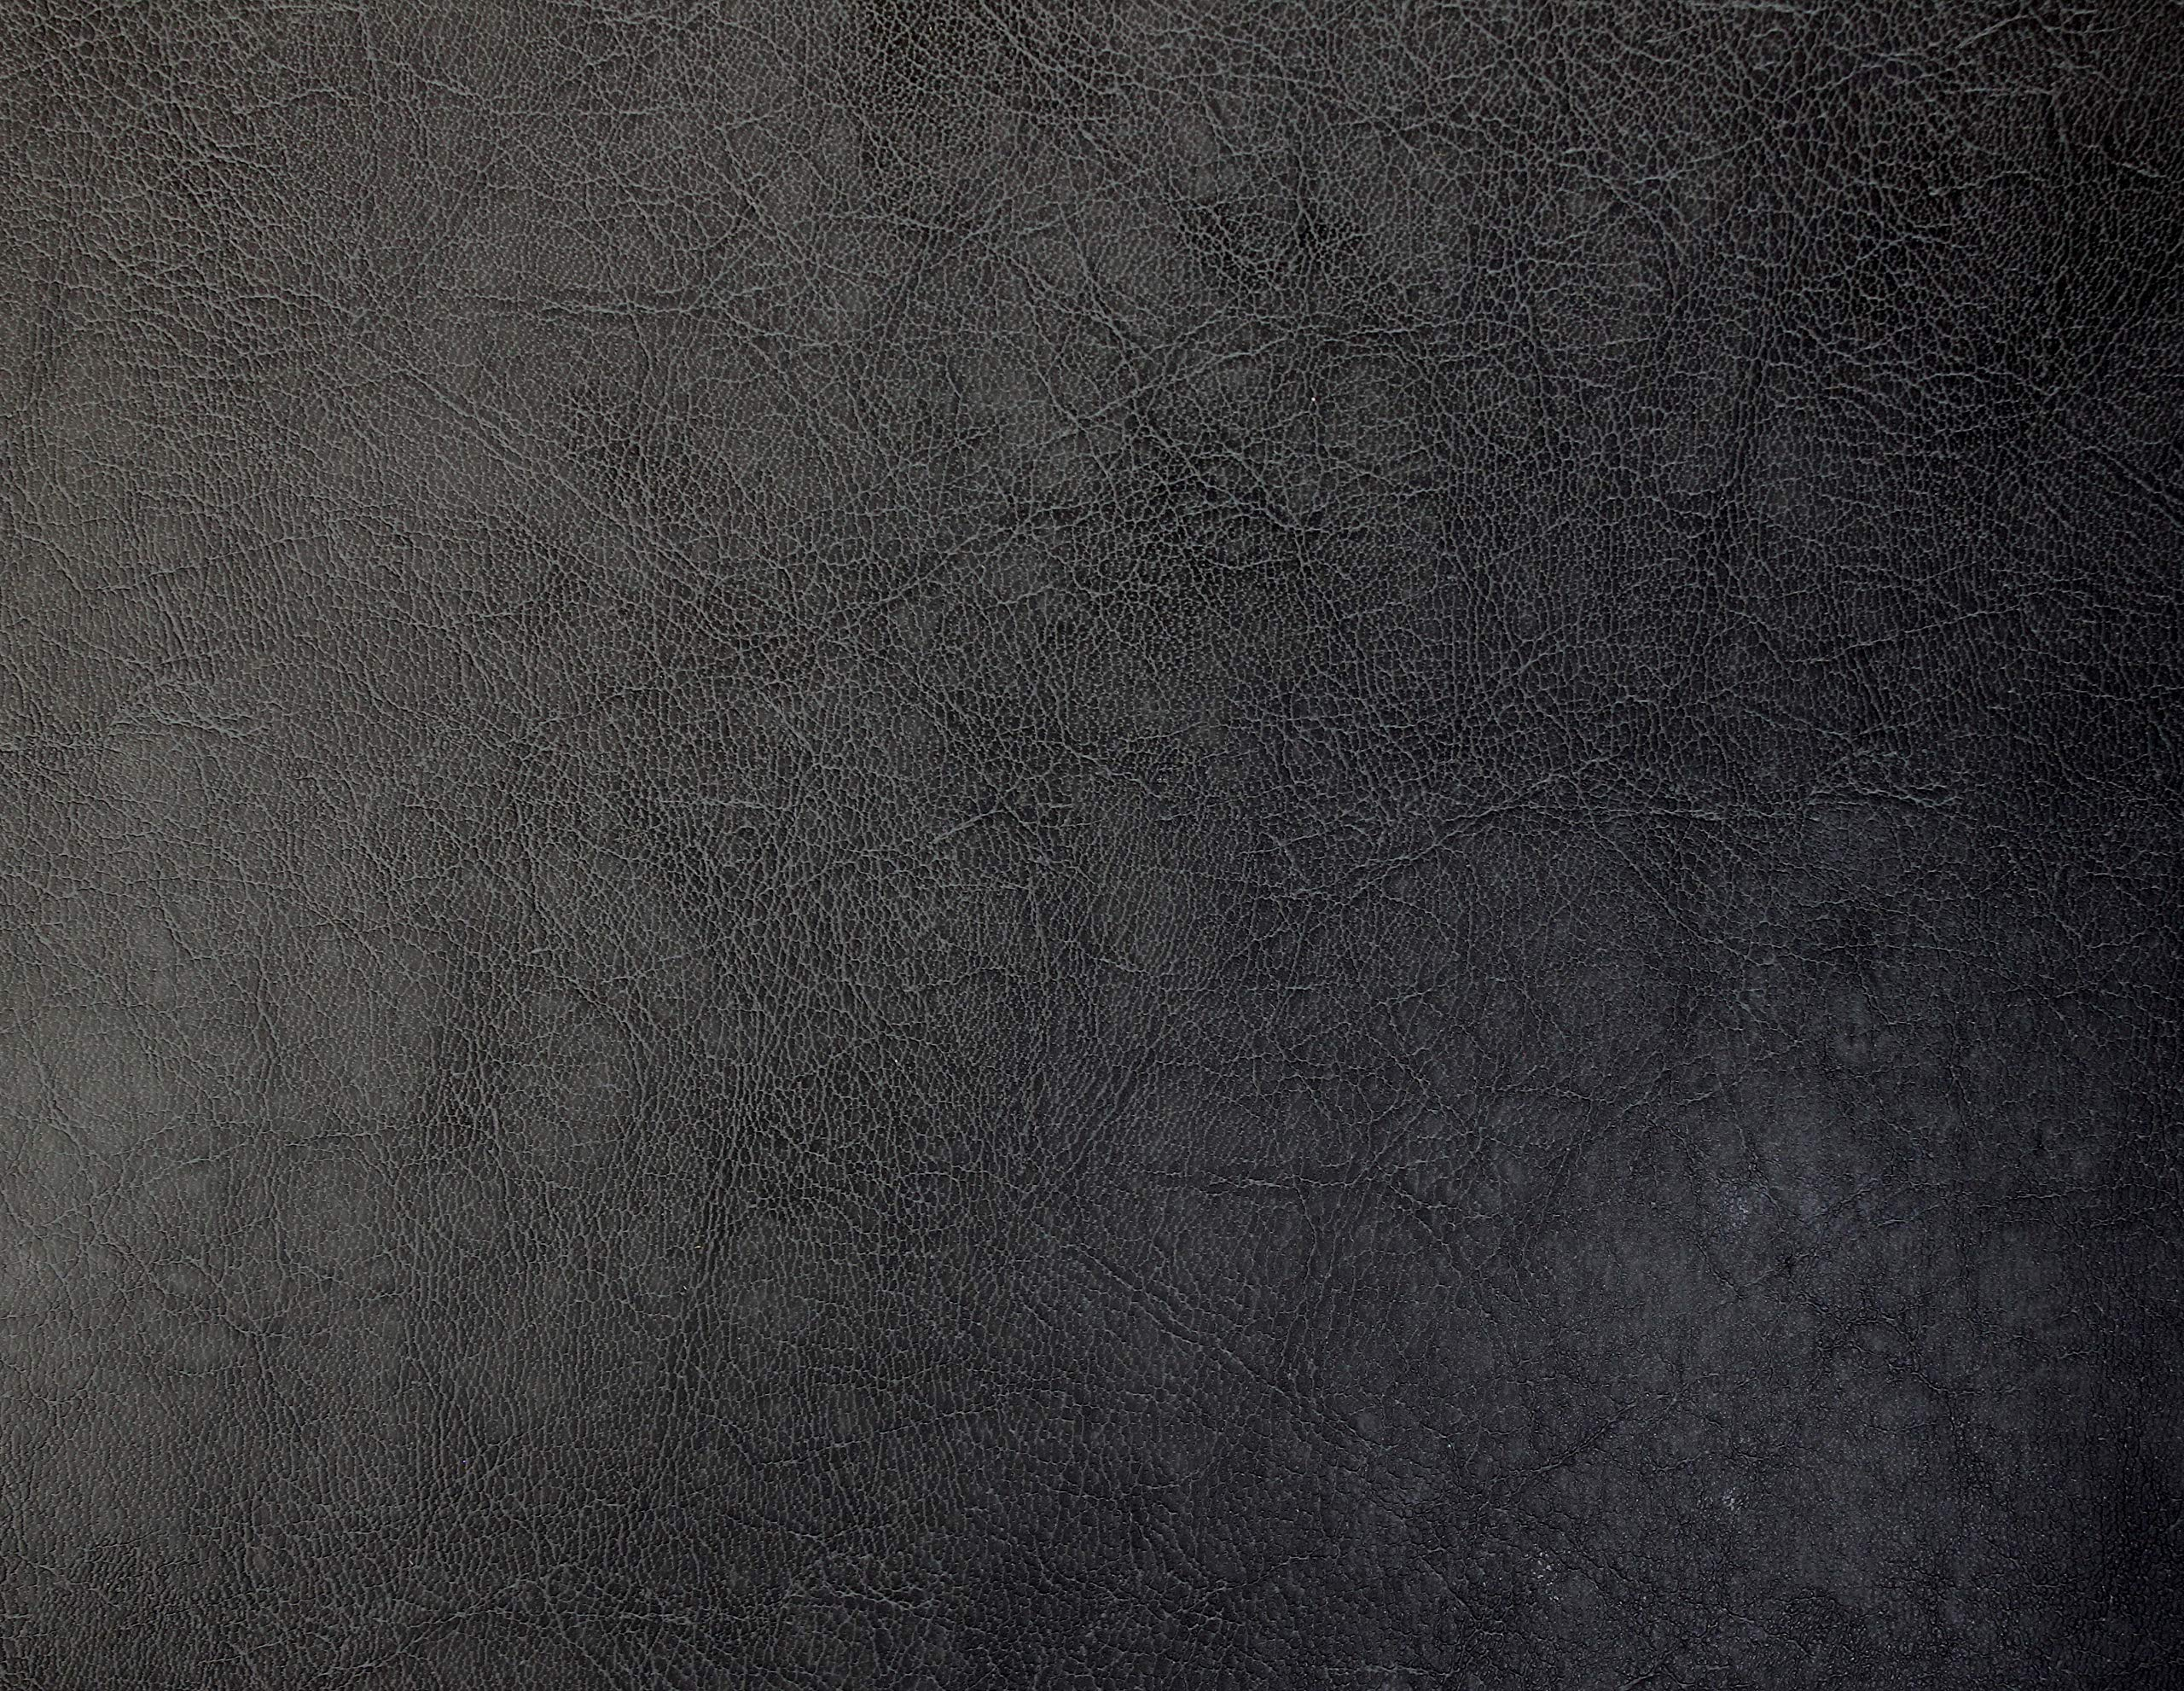 VViViD Bycast65 Black Matte Top-Grain Faux Leather Marine Vinyl Fabric (10ft x 54'') by VViViD (Image #5)